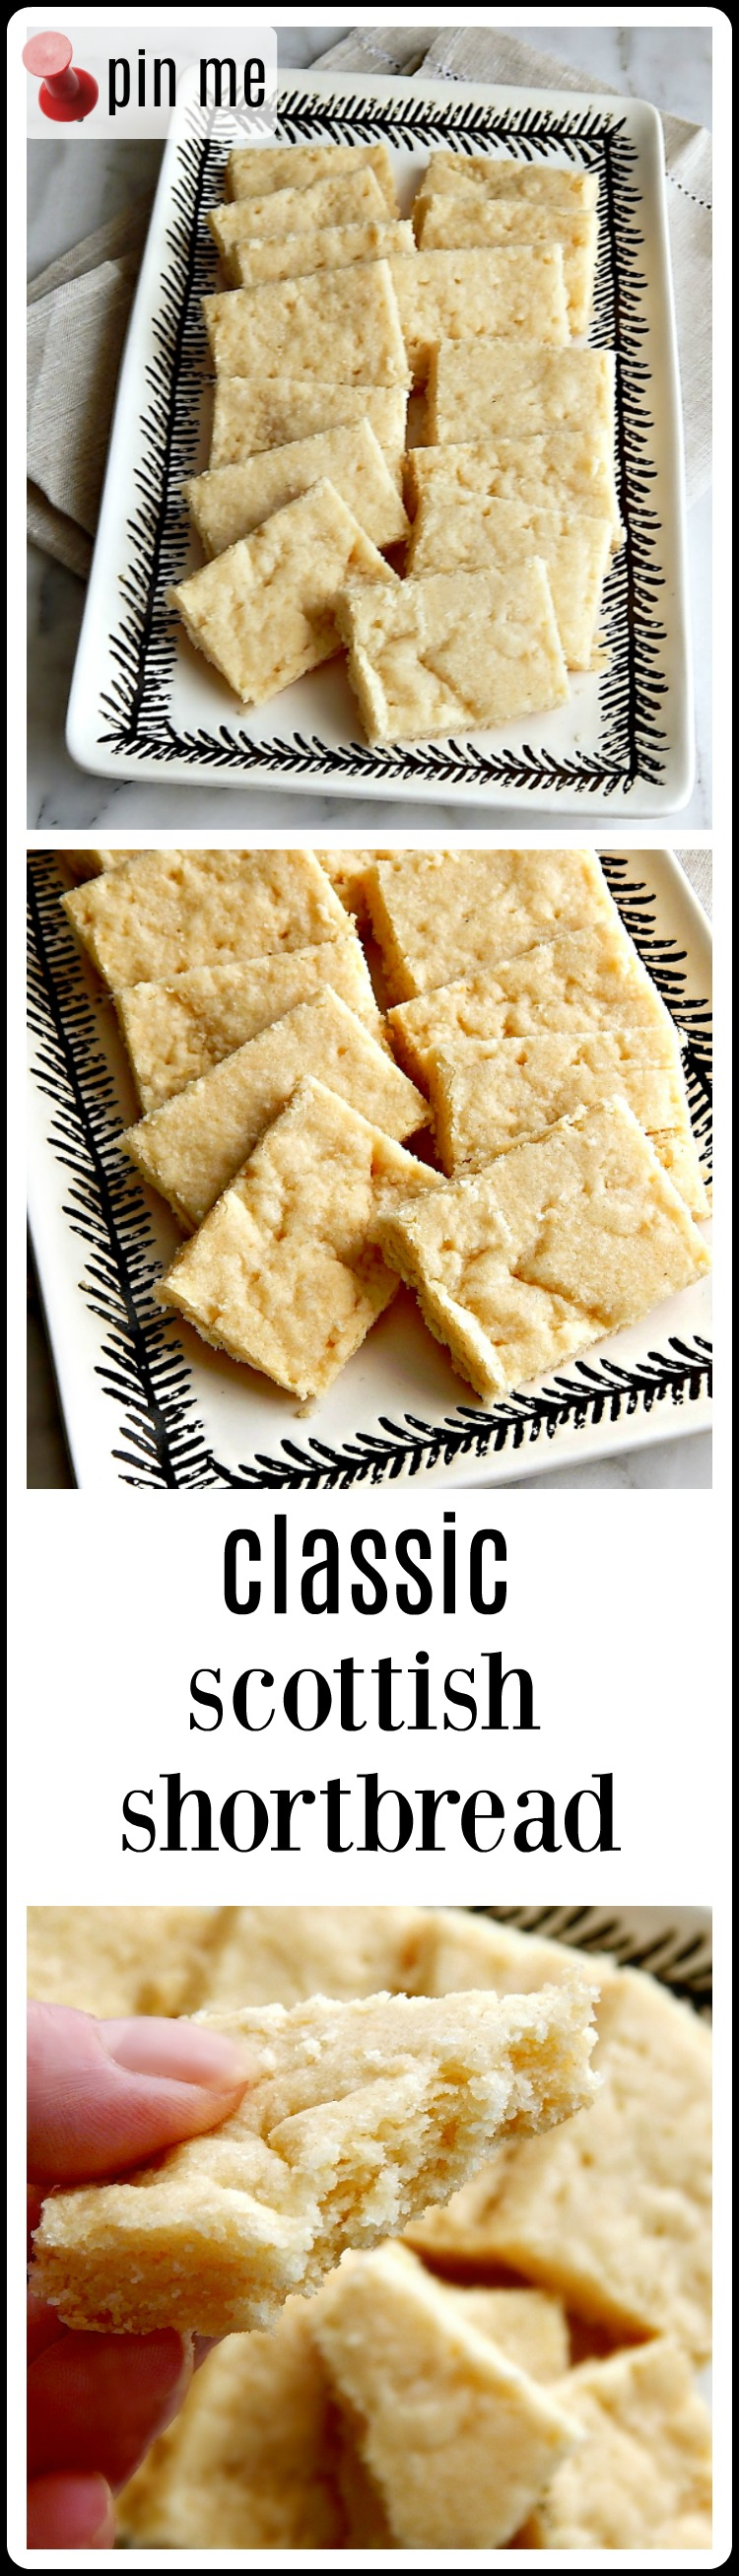 I love Classic Scottish Shortbread. Simple buttery melt in your mouth Shortbread. Ok, it's no Chocolate Chip Cookie, but other than that Classic Scottish Shortbread is everything. This recipe is so good, it will make a Scotsman Weep. #Shortbread #ClassicShortbread #ClassicScottishShortbread